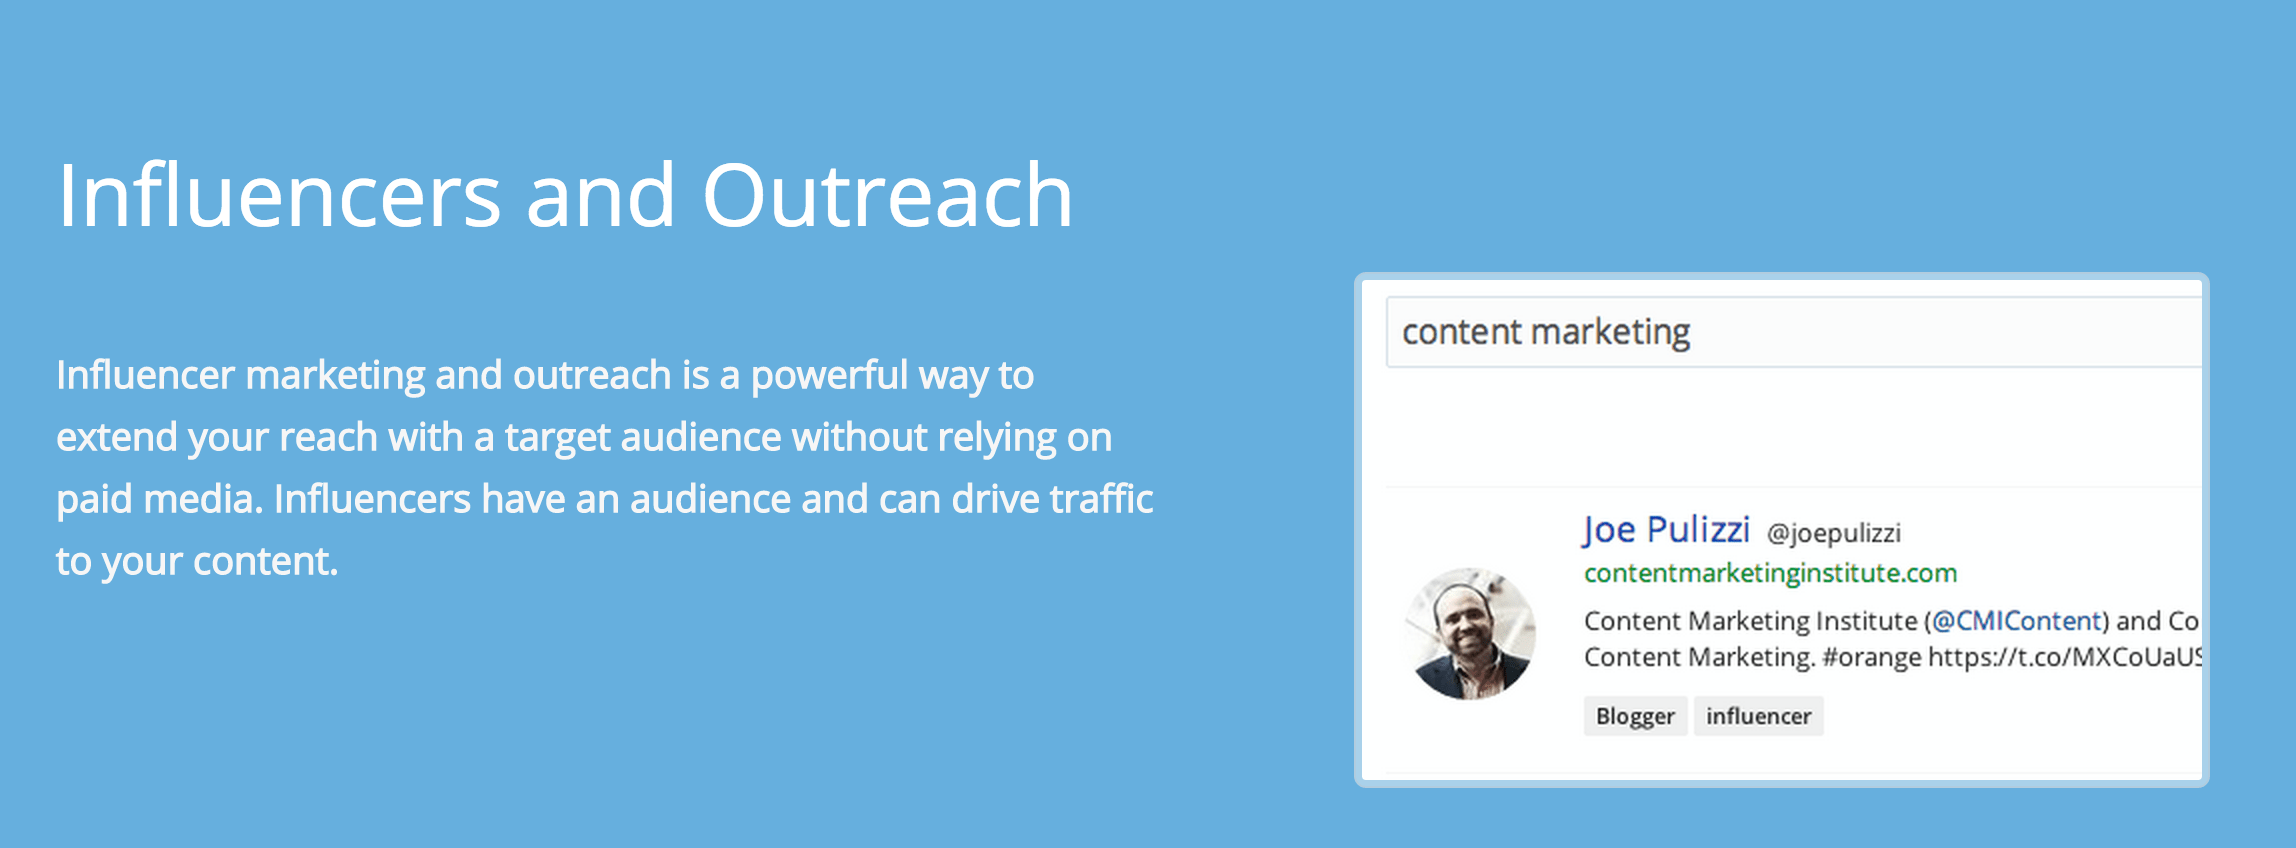 buzzsumo-influencers-outreach